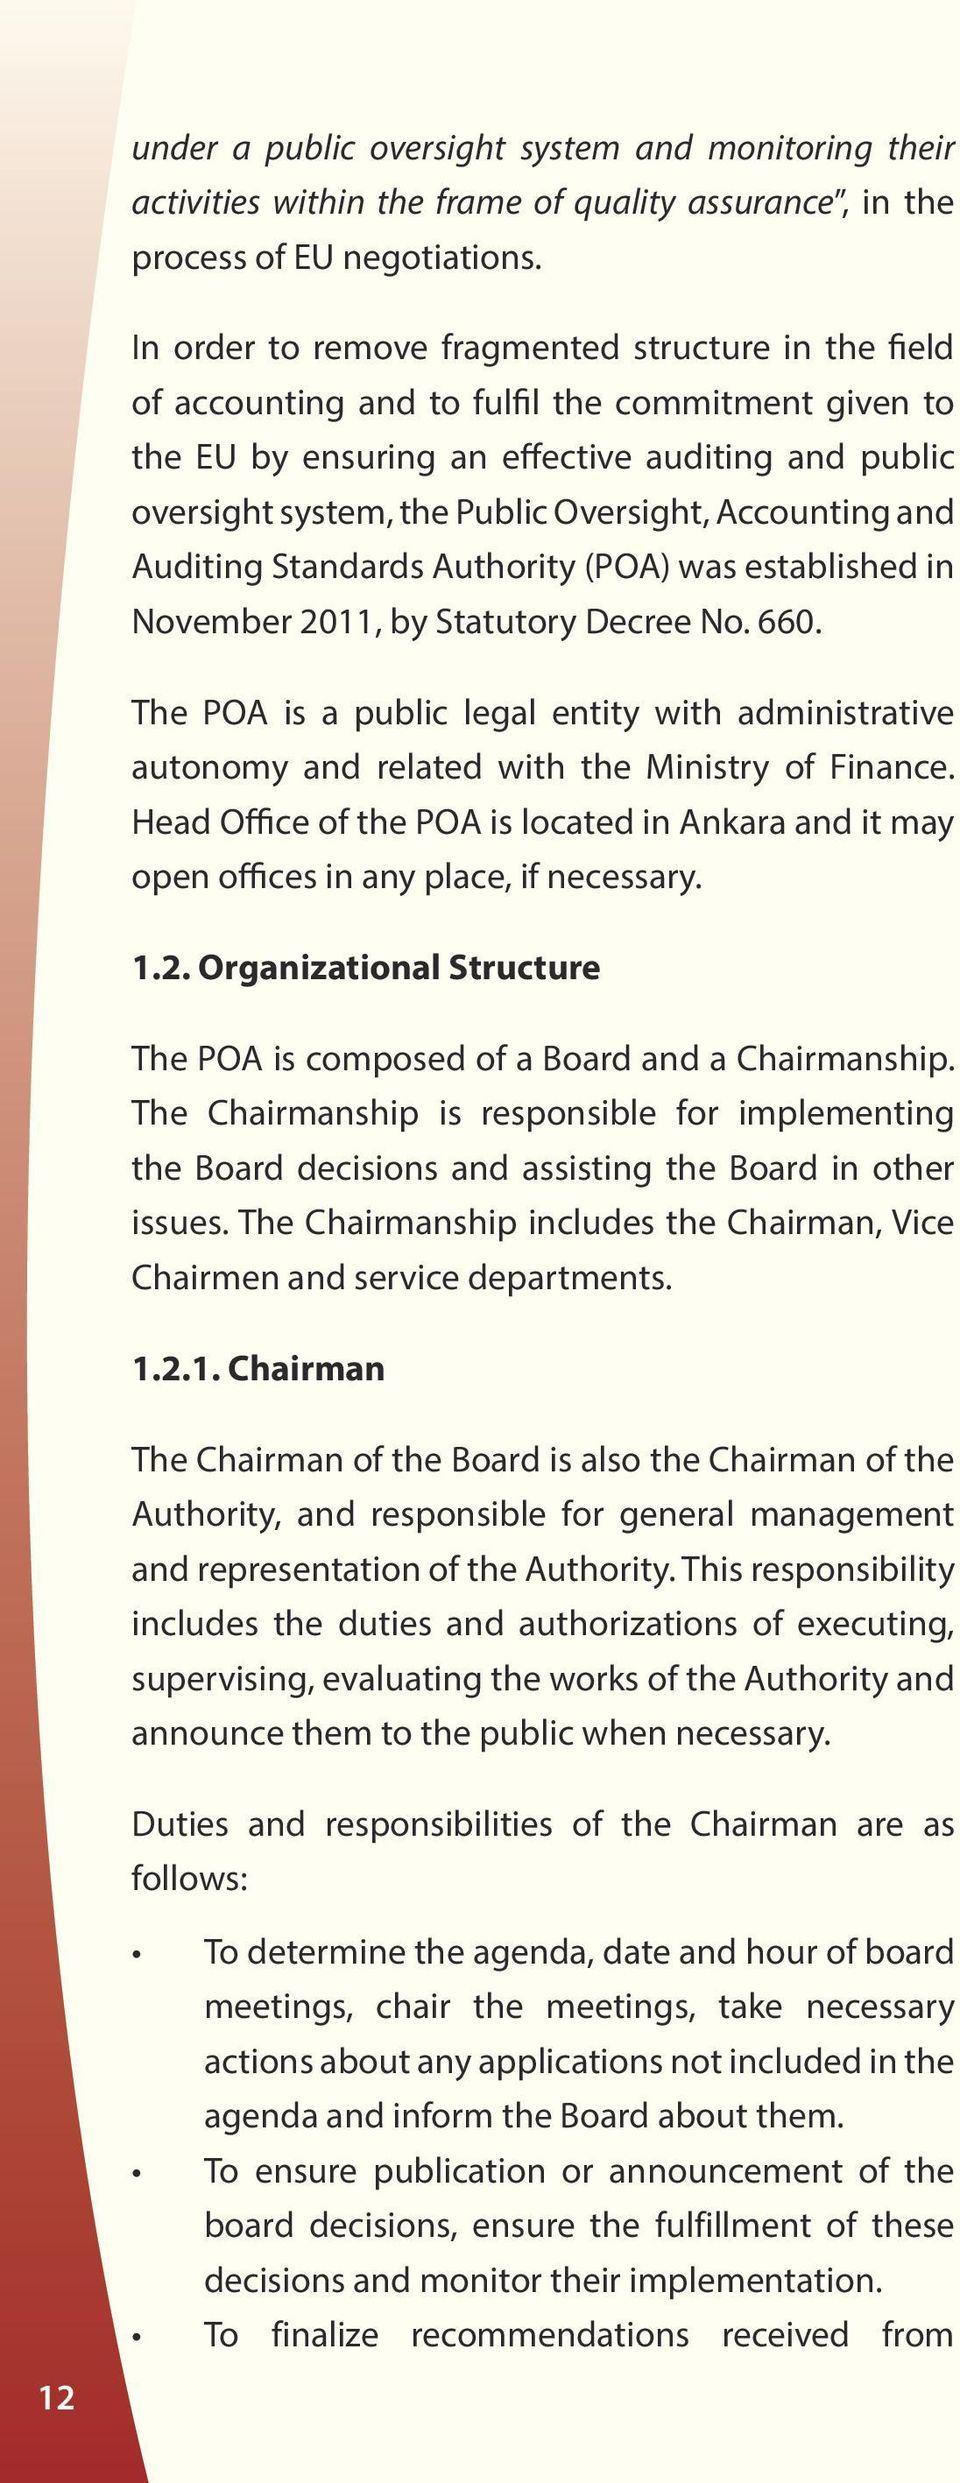 Accounting and Auditing Standards Authority (POA) was established in November 2011, by Statutory Decree No. 660.